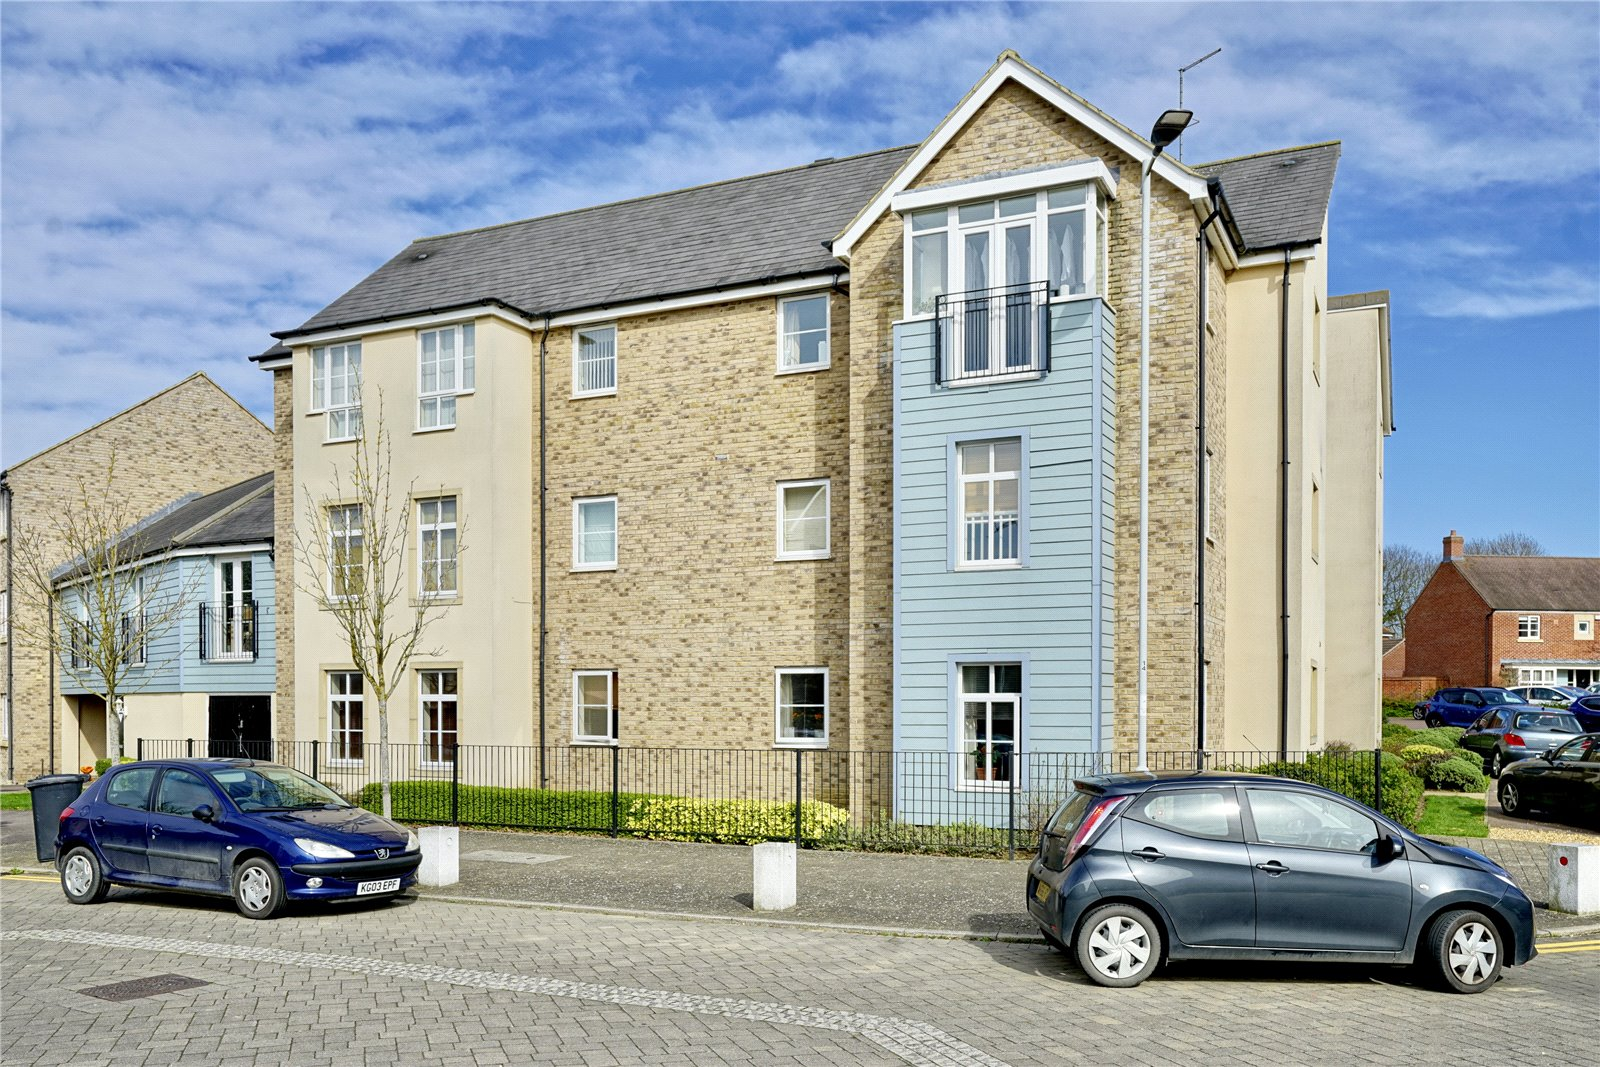 2 bed apartment for sale in Alsop Way, St. Neots - Property Image 1